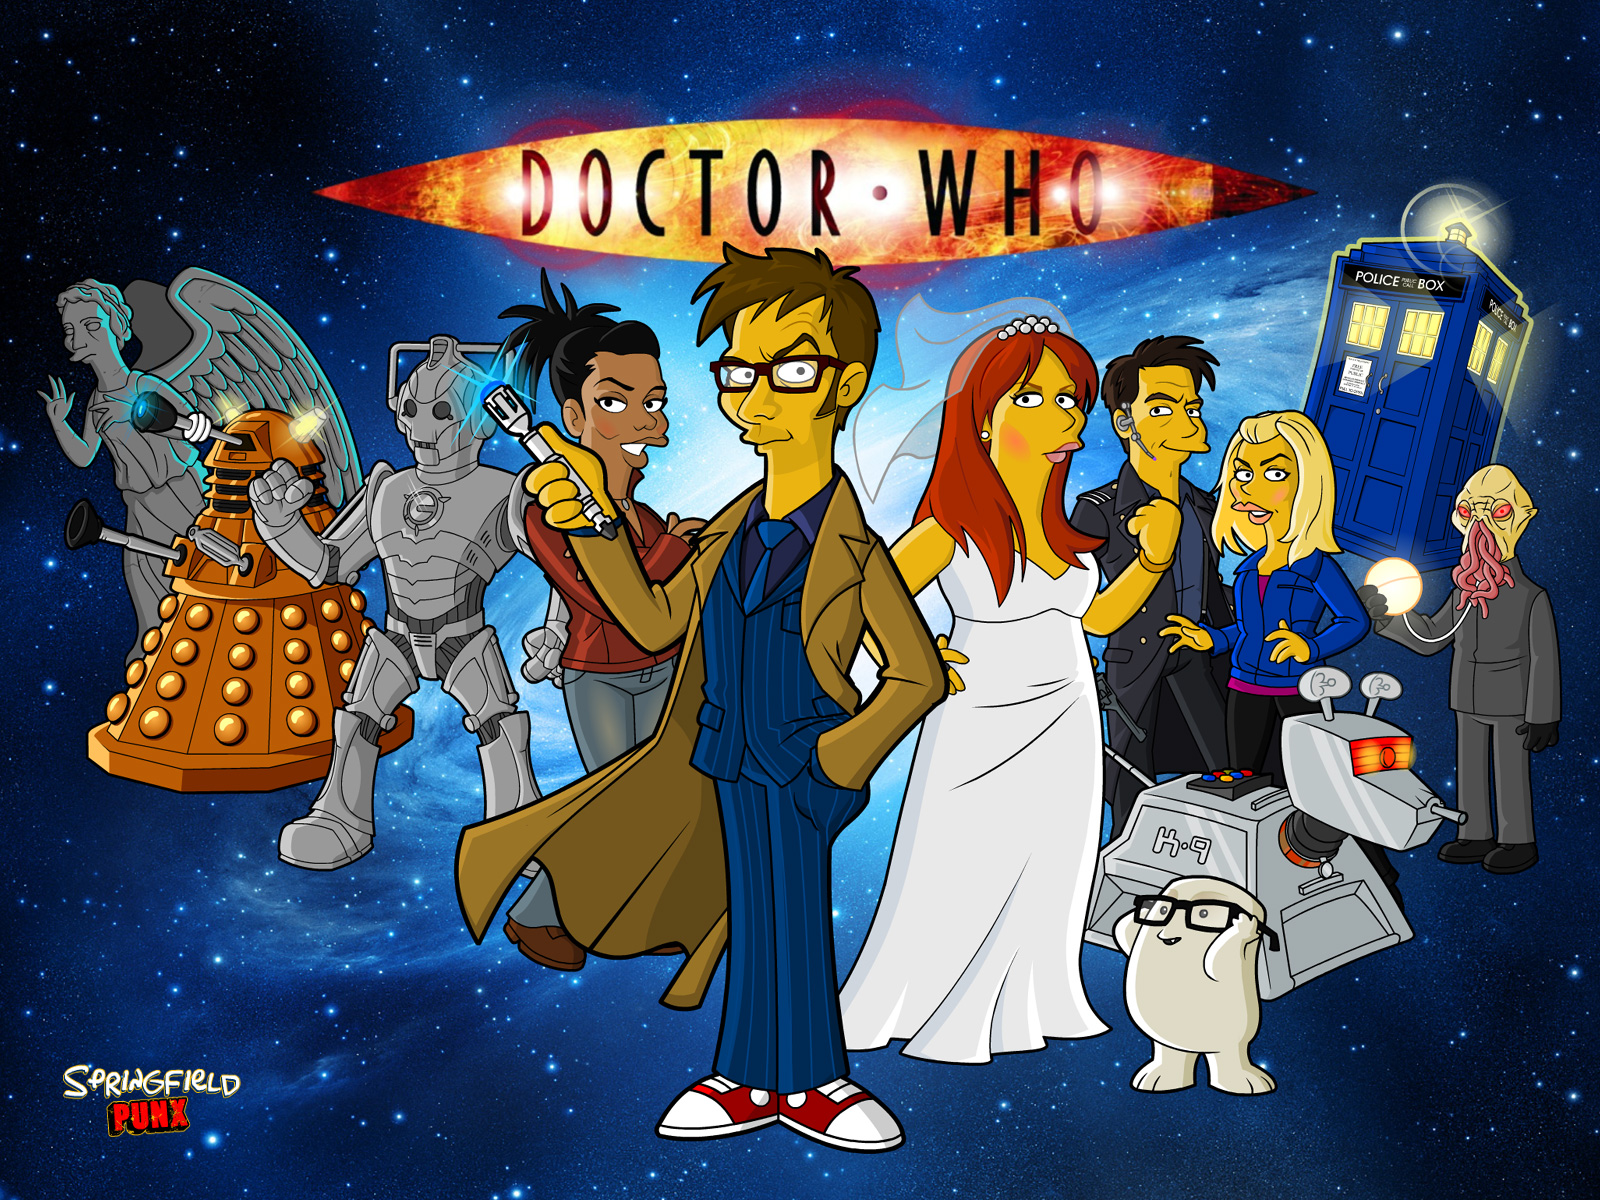 Doctor Who David Tennant Wallpaper1600x1200 likewise 85 x 11 christmas coloring pages 1 on 85 x 11 christmas coloring pages also 85 x 11 christmas coloring pages 2 on 85 x 11 christmas coloring pages further 85 x 11 christmas coloring pages 3 on 85 x 11 christmas coloring pages also 85 x 11 christmas coloring pages 4 on 85 x 11 christmas coloring pages